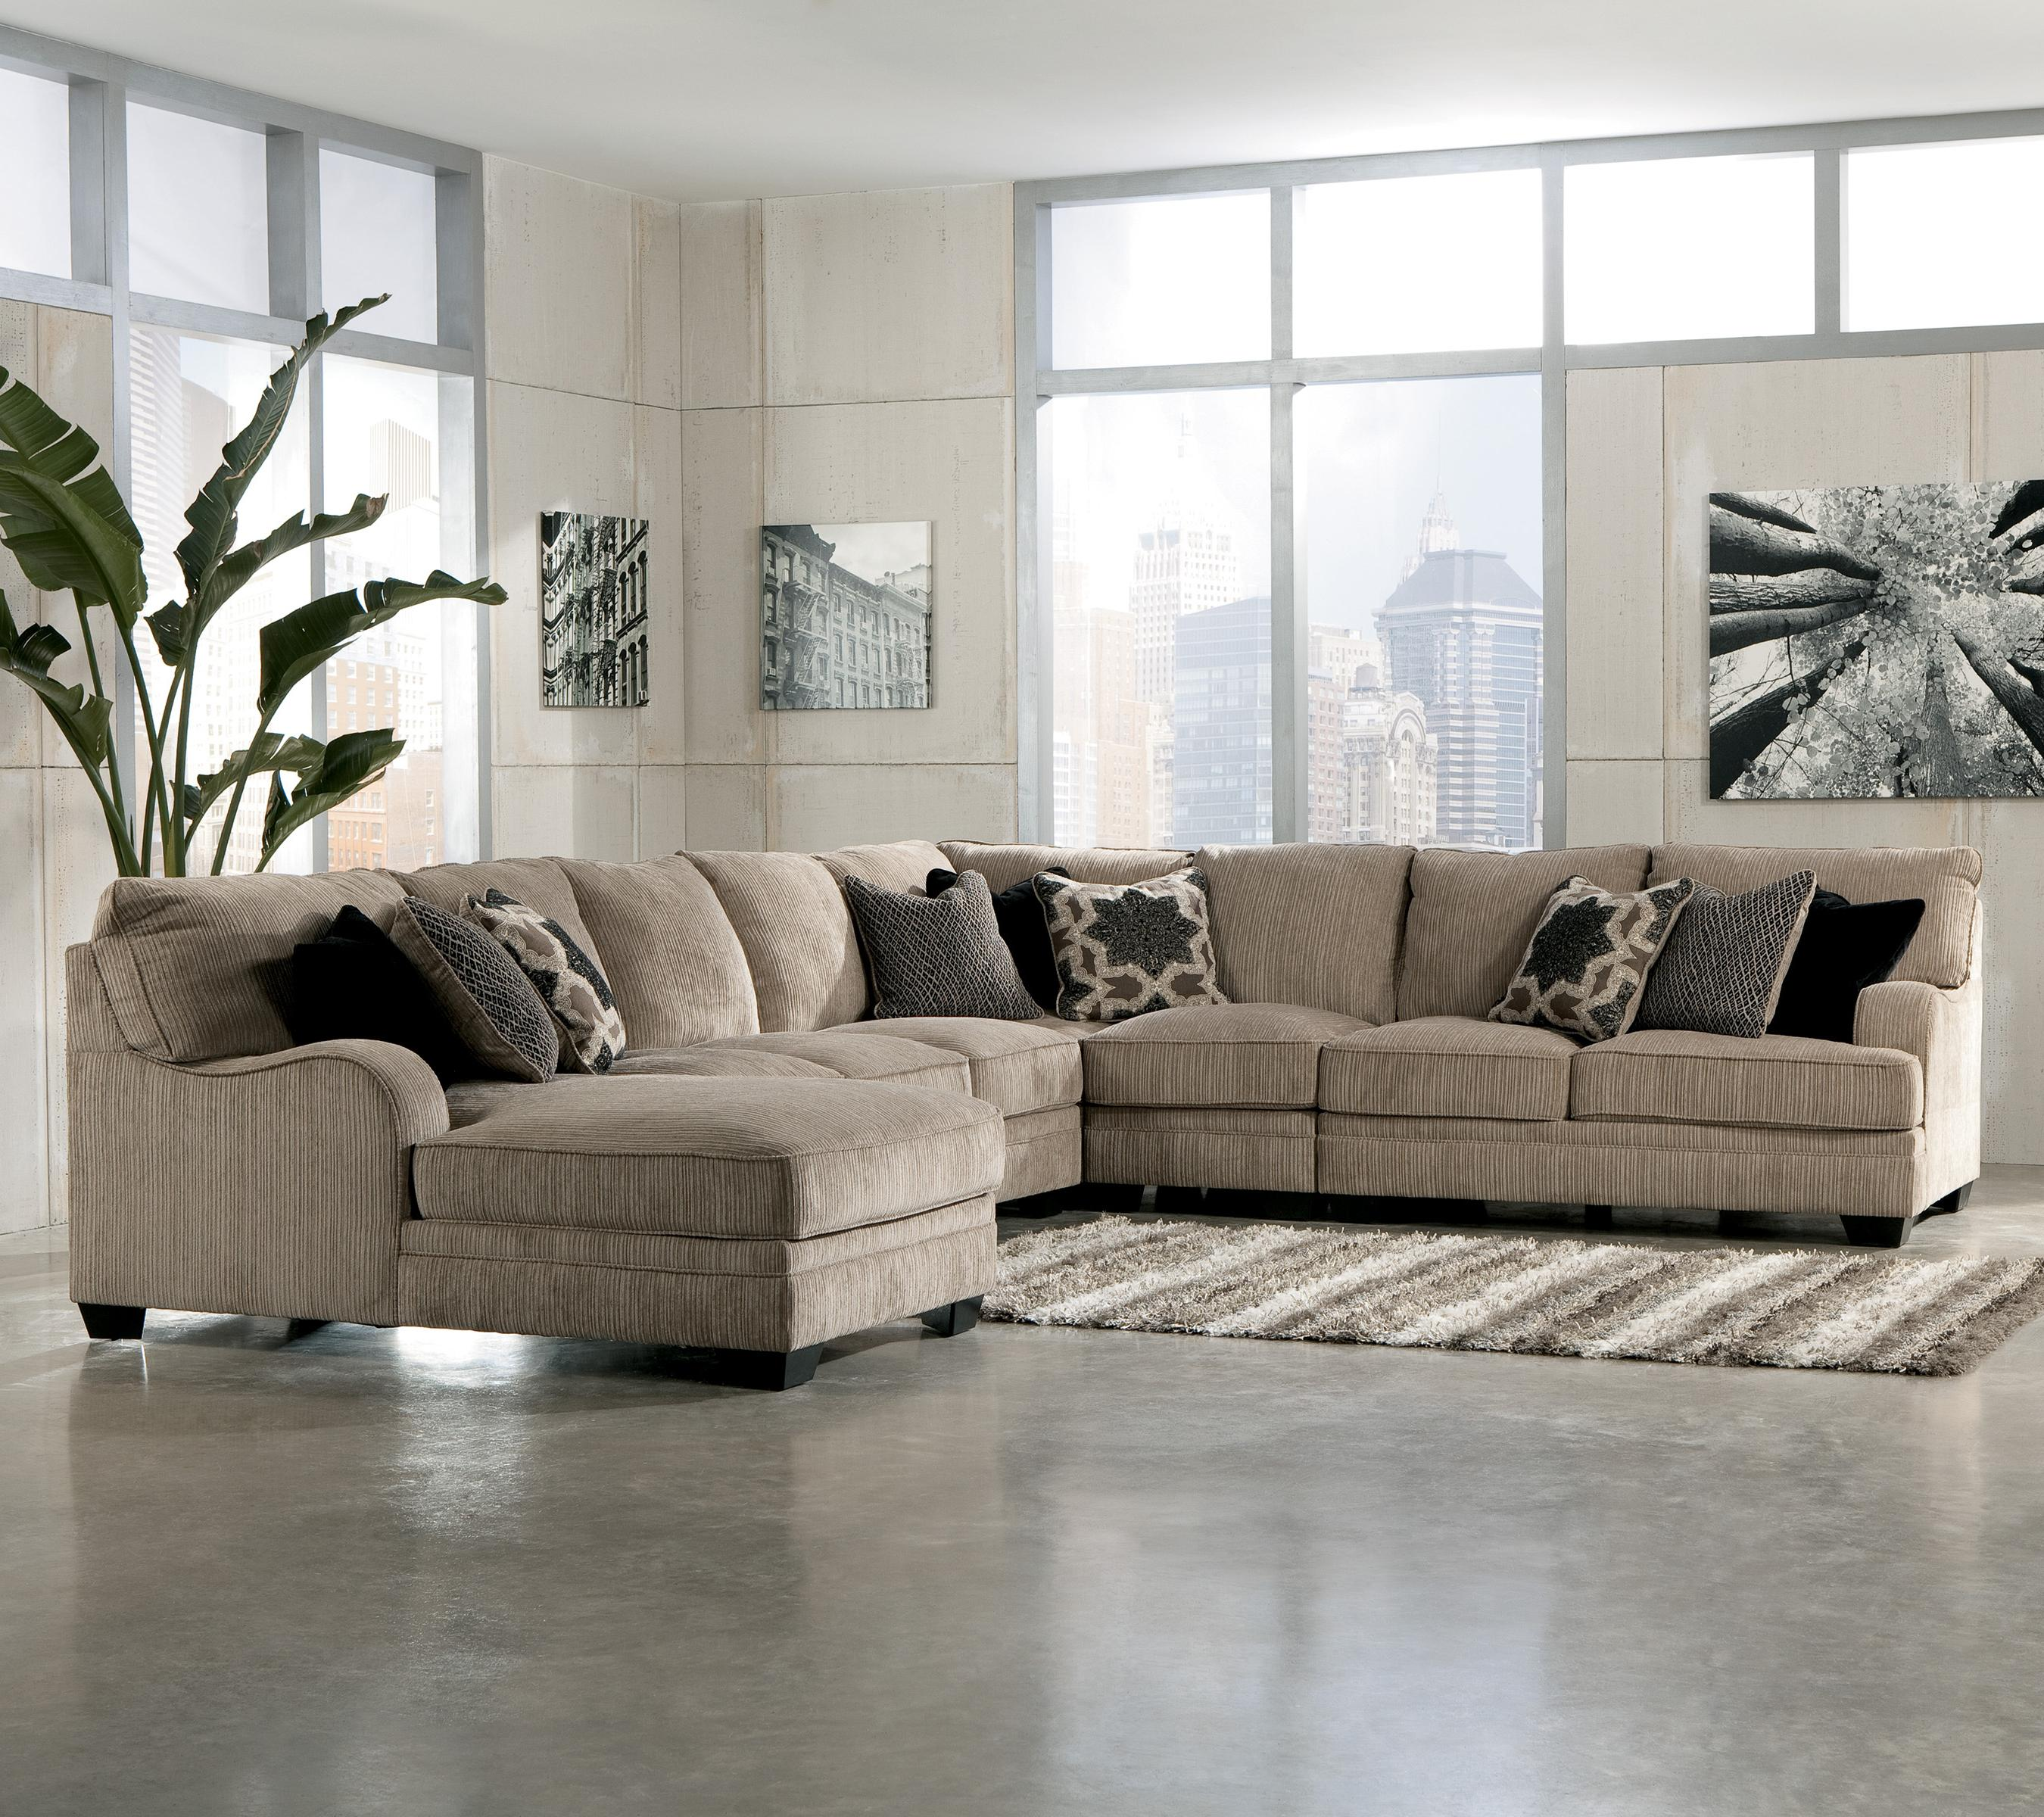 Superbe Exciting Ashley Furniture Columbus Ga For Living Room Ideas With Ashley Furniture  Columbus Ohio